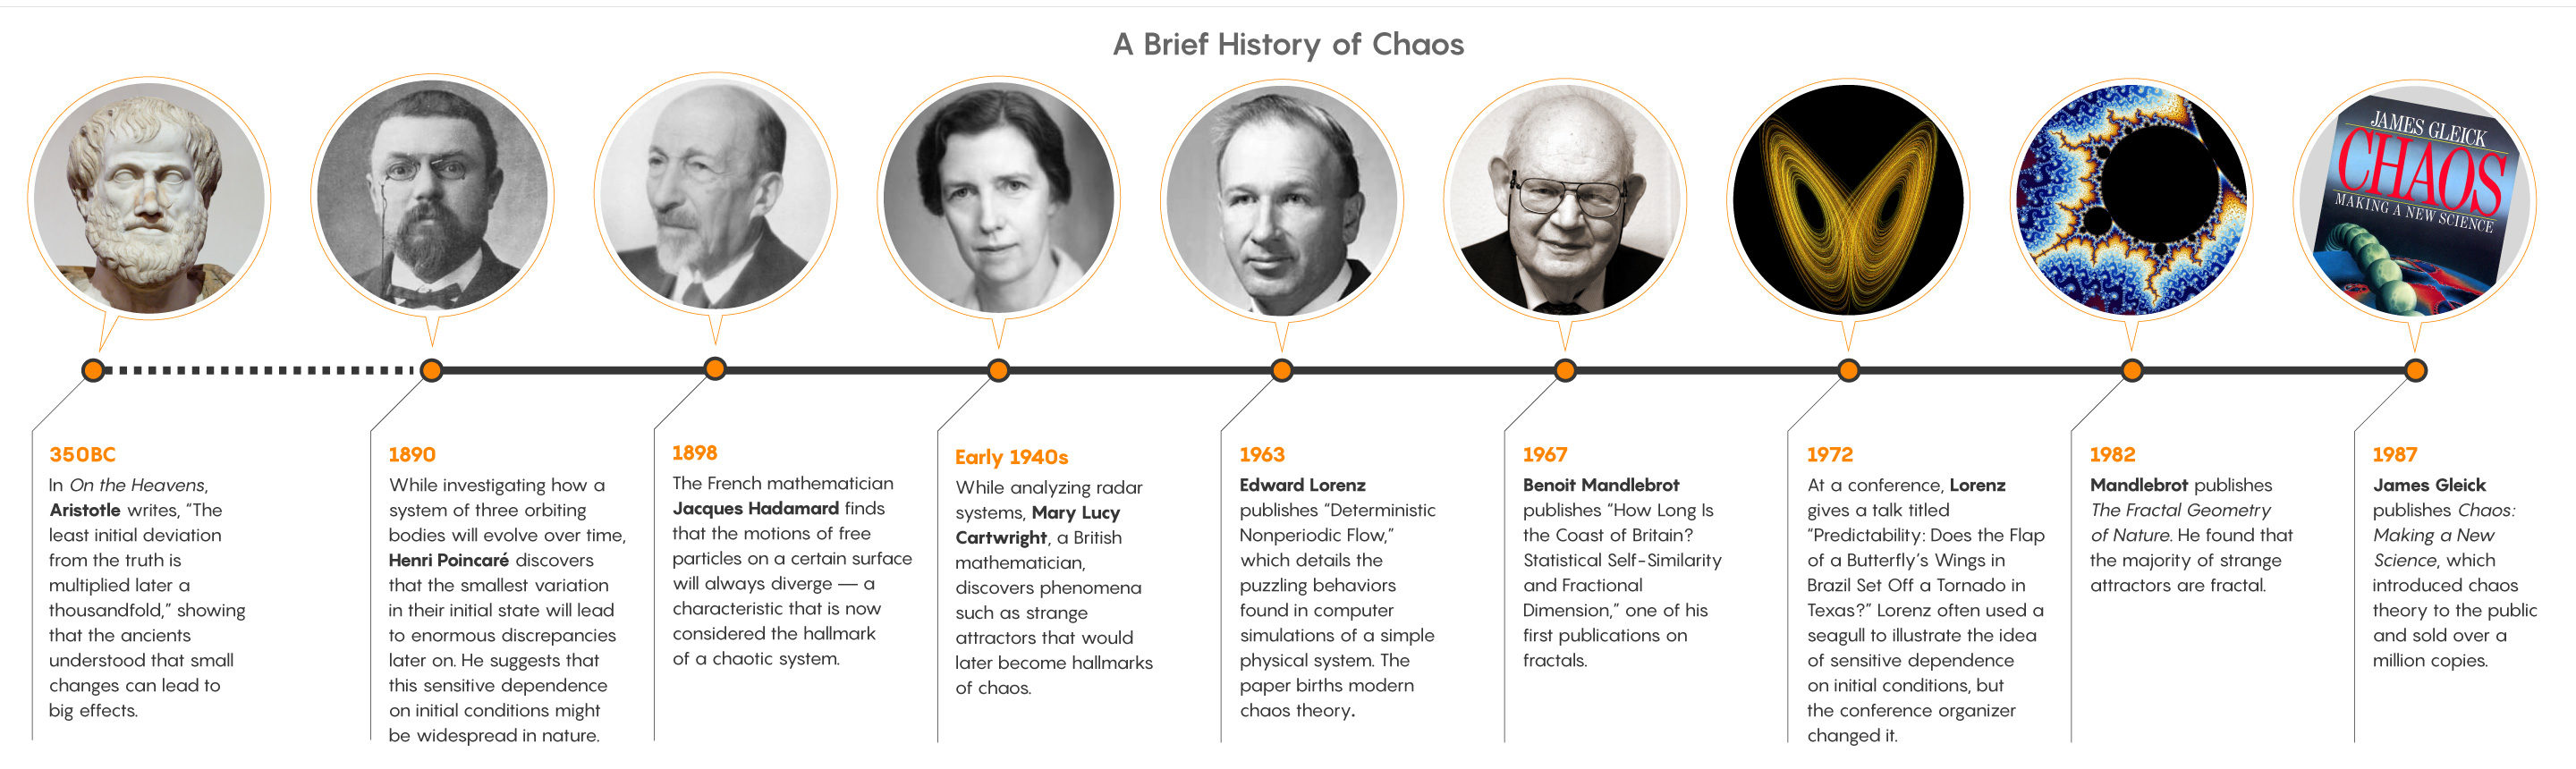 """A Brief History of Chaos"" Infographic"